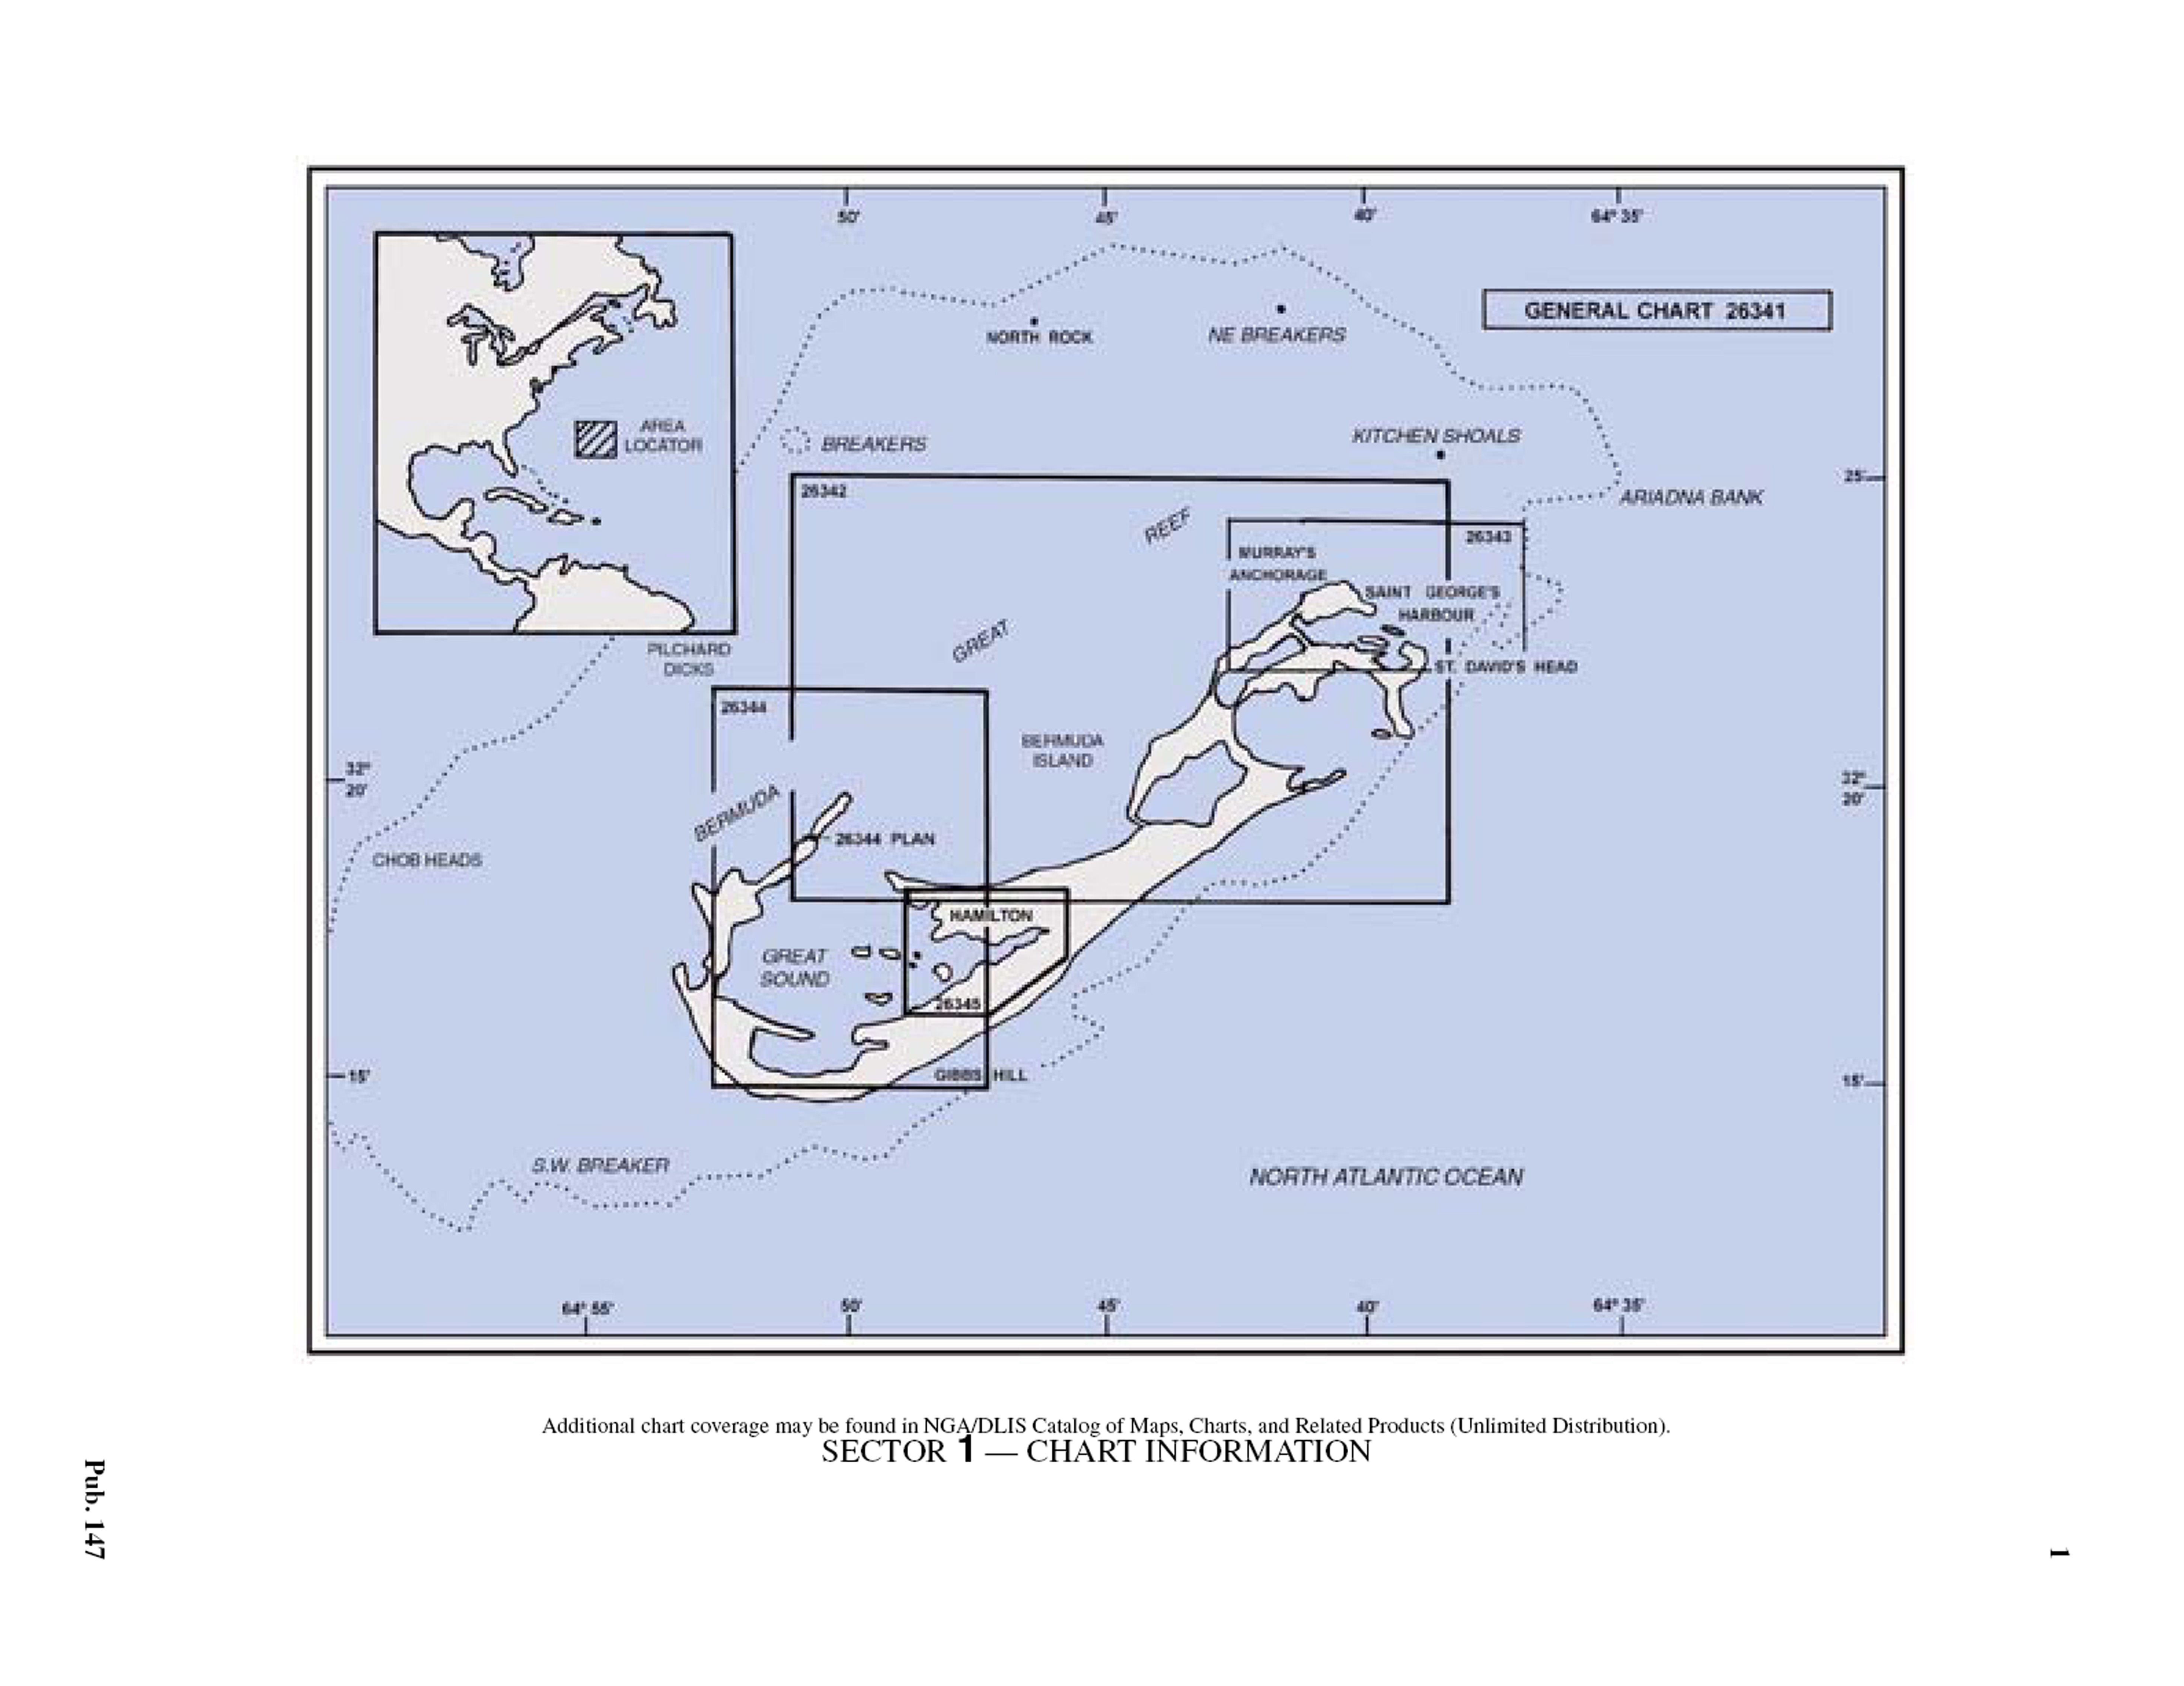 Marine Charts App: SAILING DIRECTIONS-ENROUTE-Caribbean Sea Vol 1-4Sector 1 ,Chart